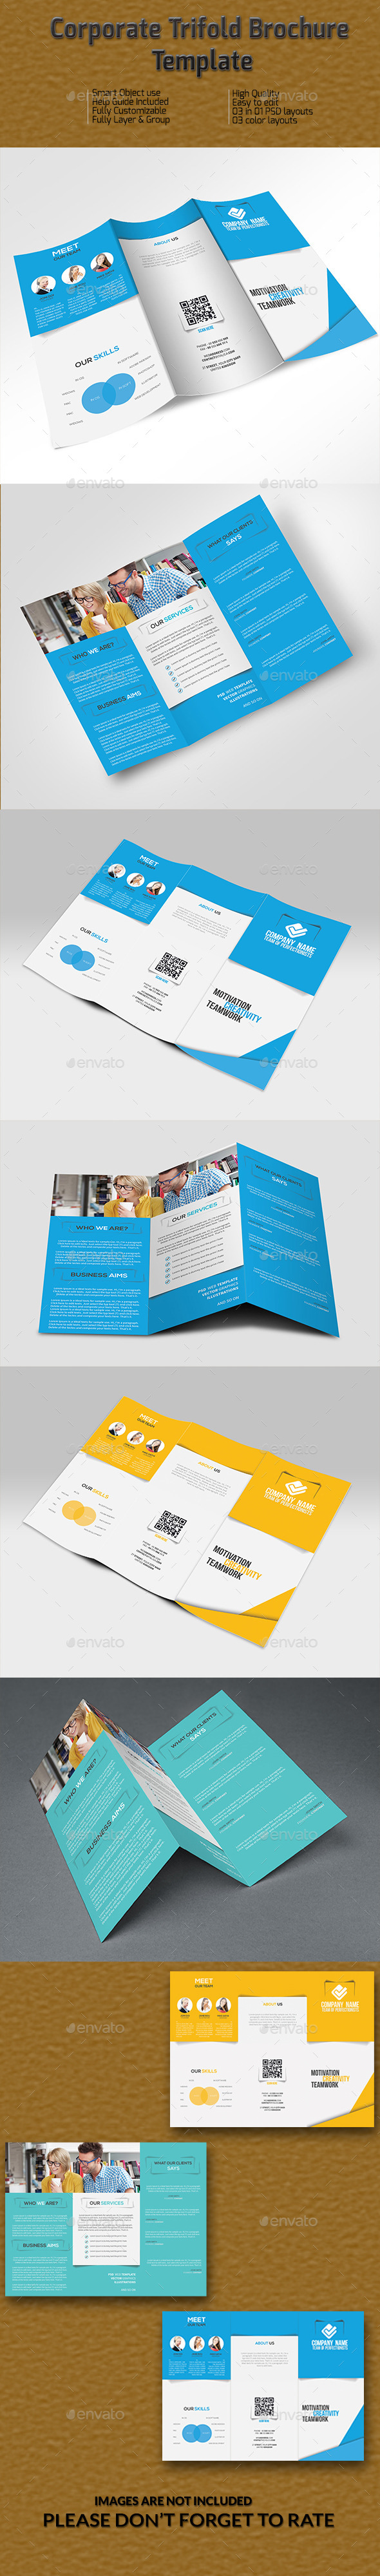 Corporate Trifold Brochure Template - Brochures Print Templates